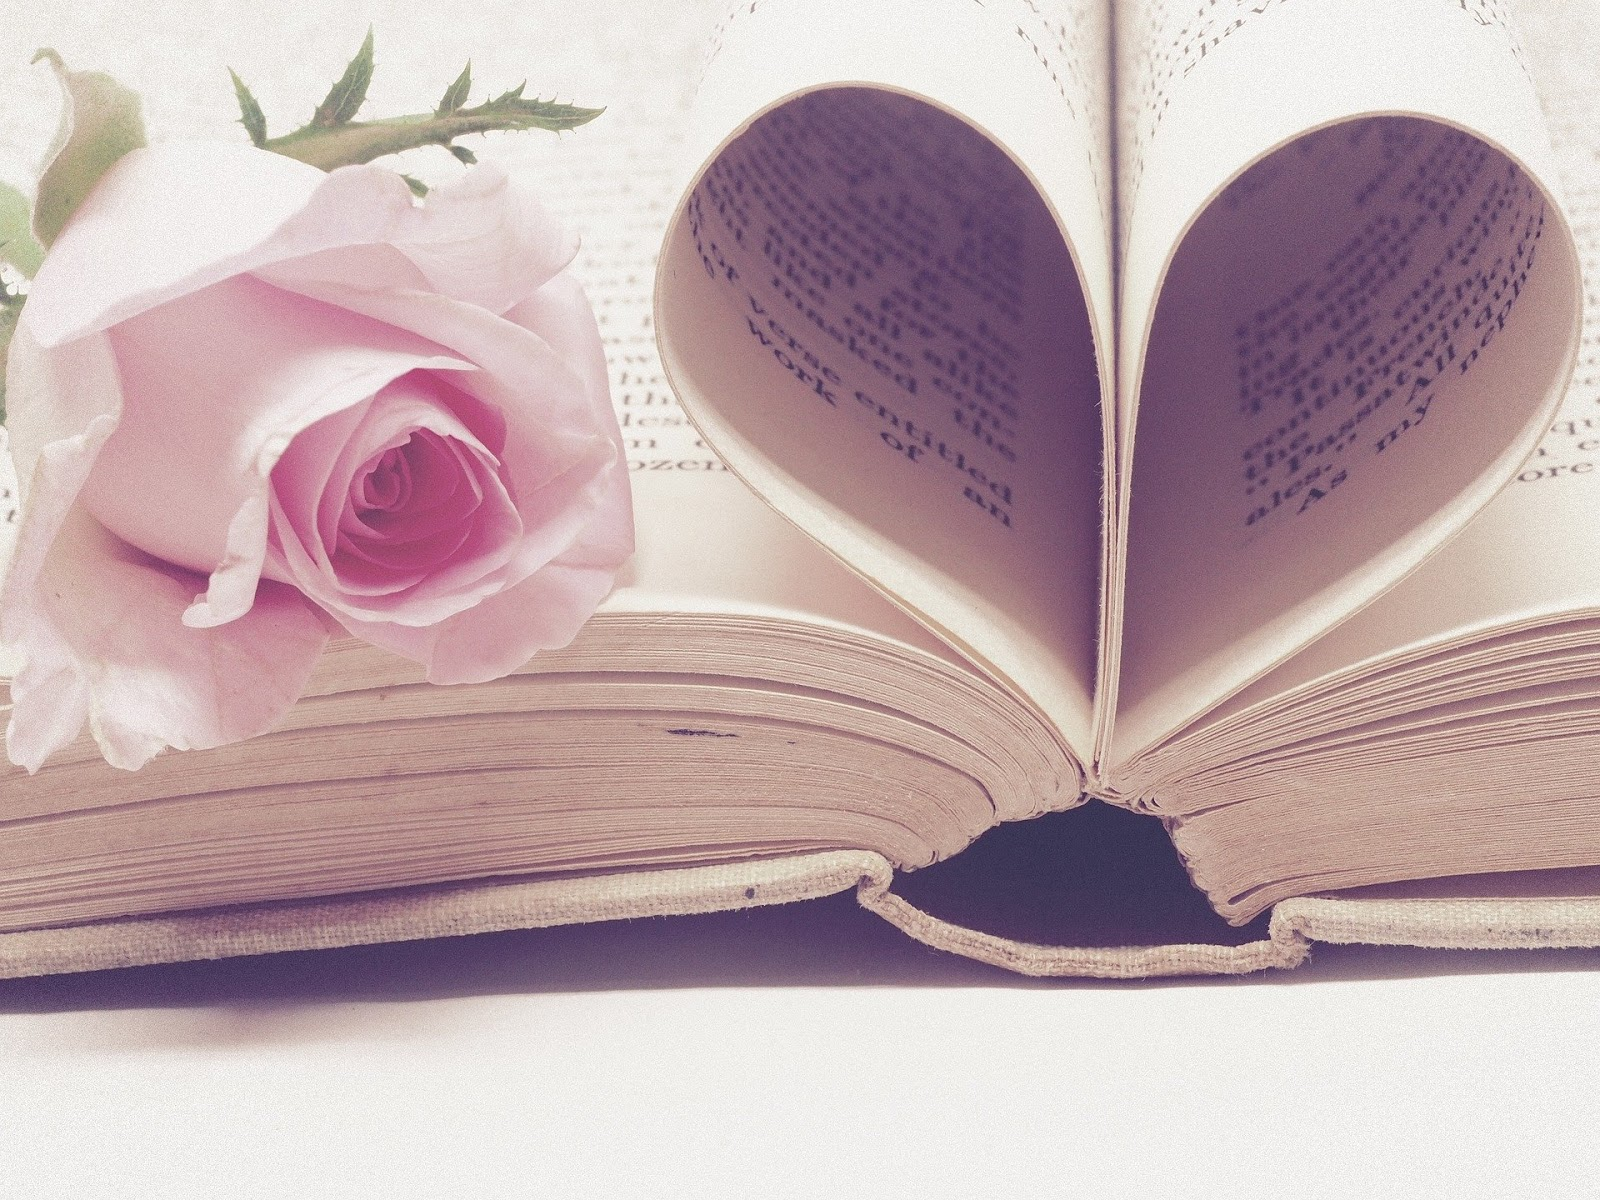 Pink rose on a book with heart pages